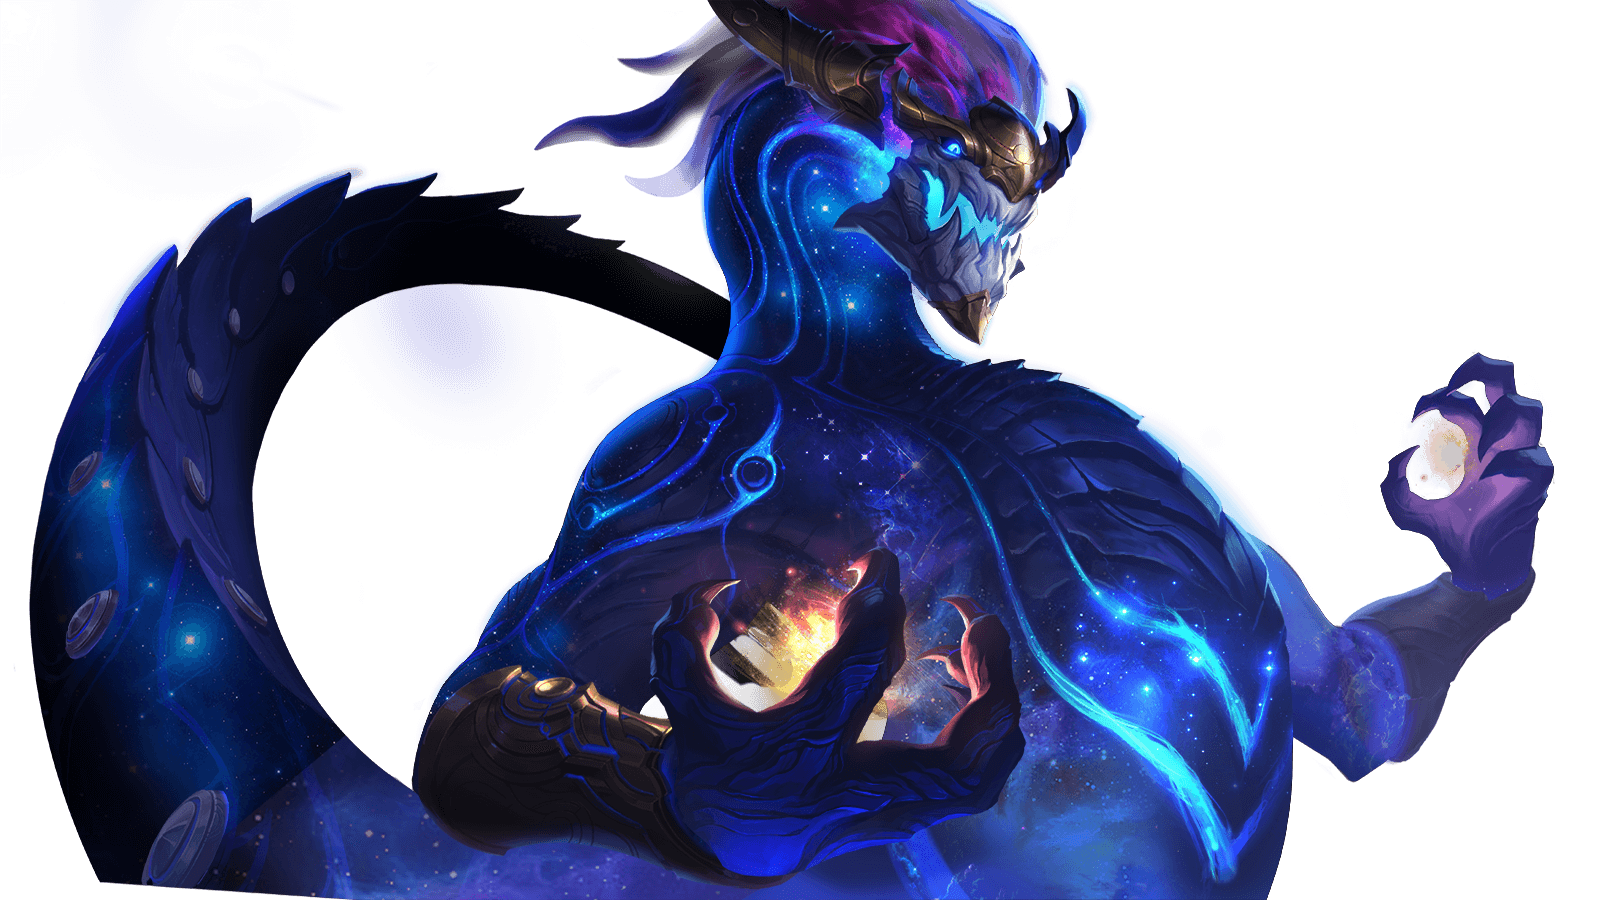 cool transparent pictures for aurelion sol for editing leagueoflegends. Black Bedroom Furniture Sets. Home Design Ideas